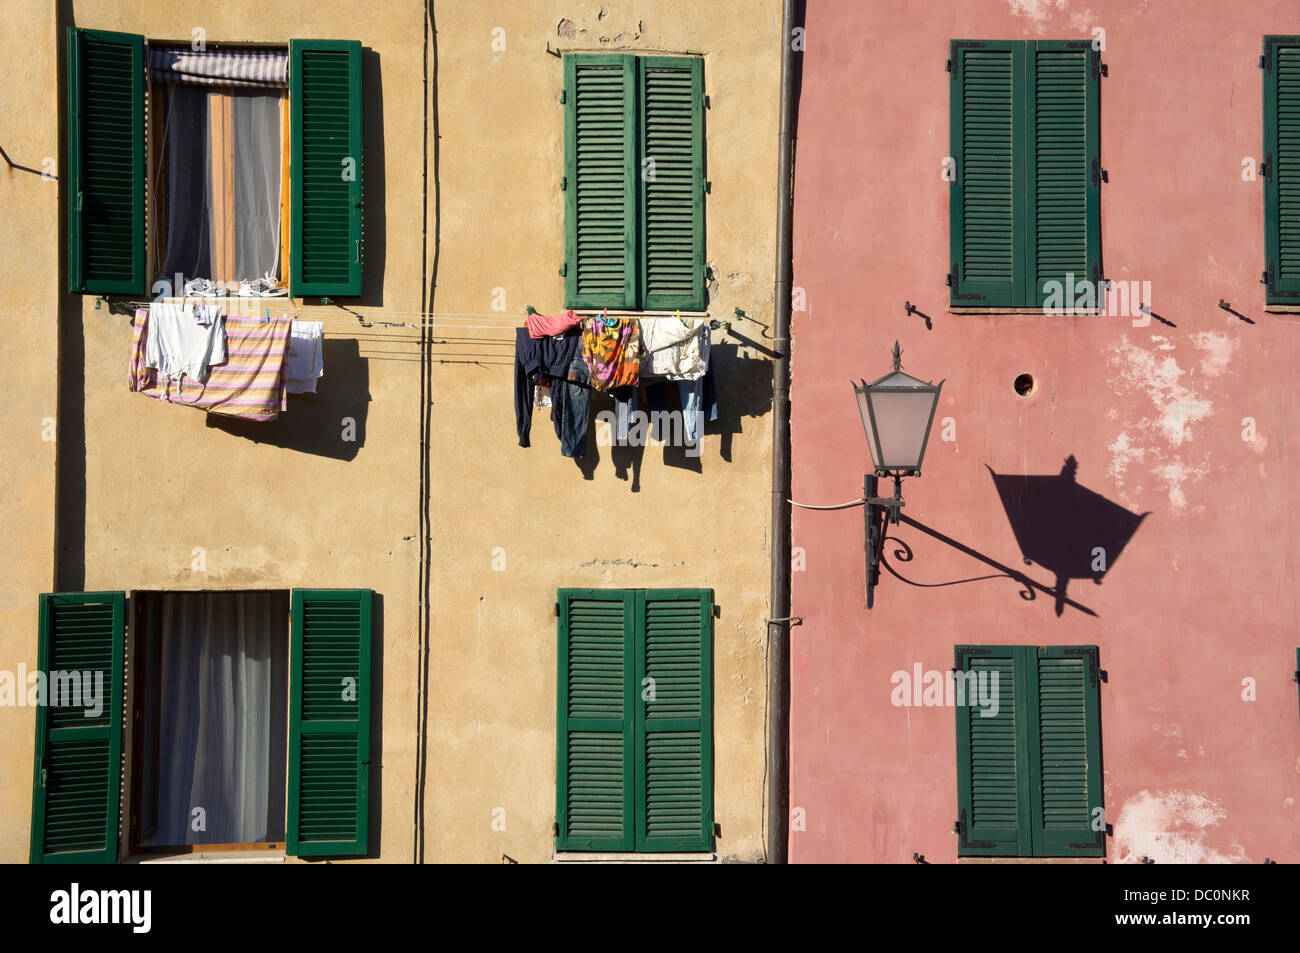 Neighbors hang clothes to dry in the sun on the facade of their houses - Stock Image